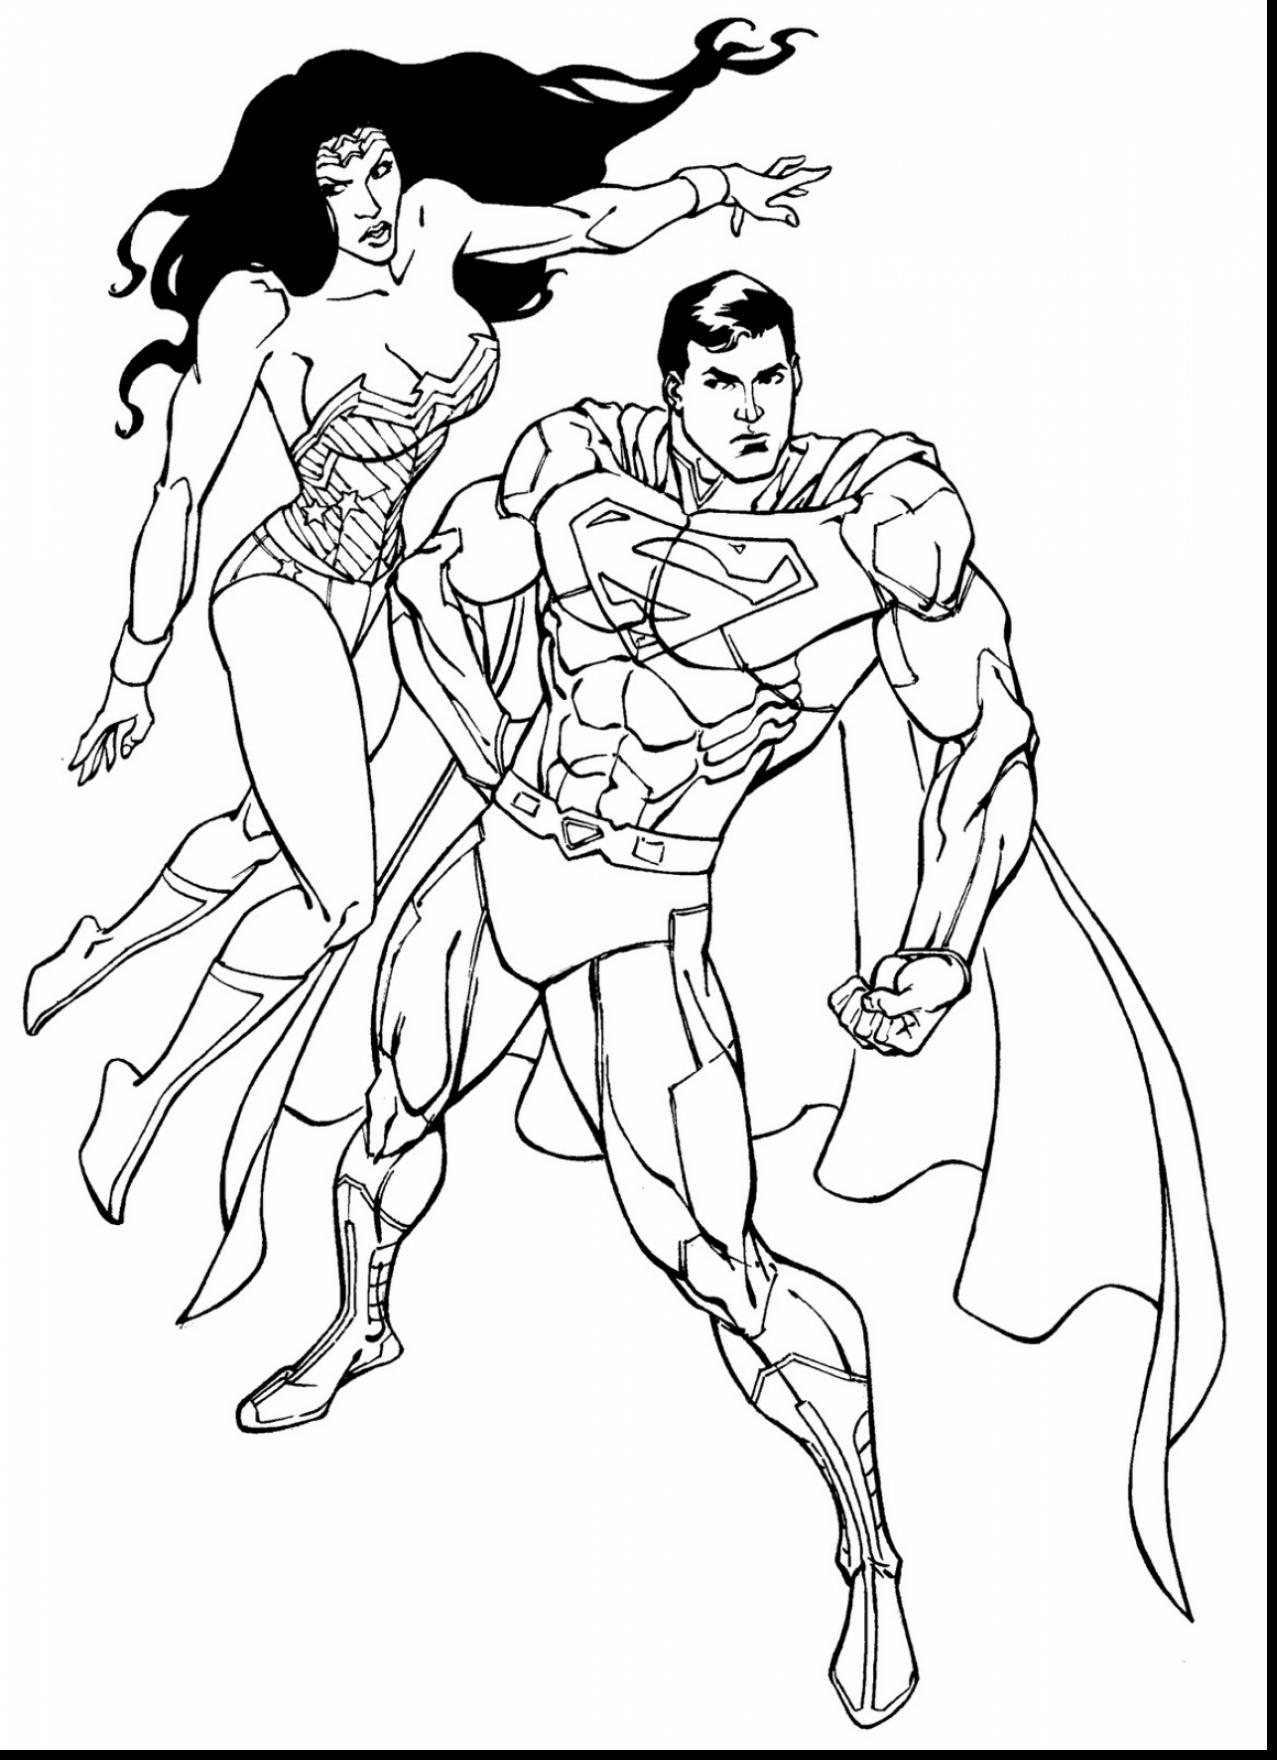 photograph regarding Batman Vs Superman Coloring Pages Printable identify Batman Superman Coloring Web pages at  No cost for